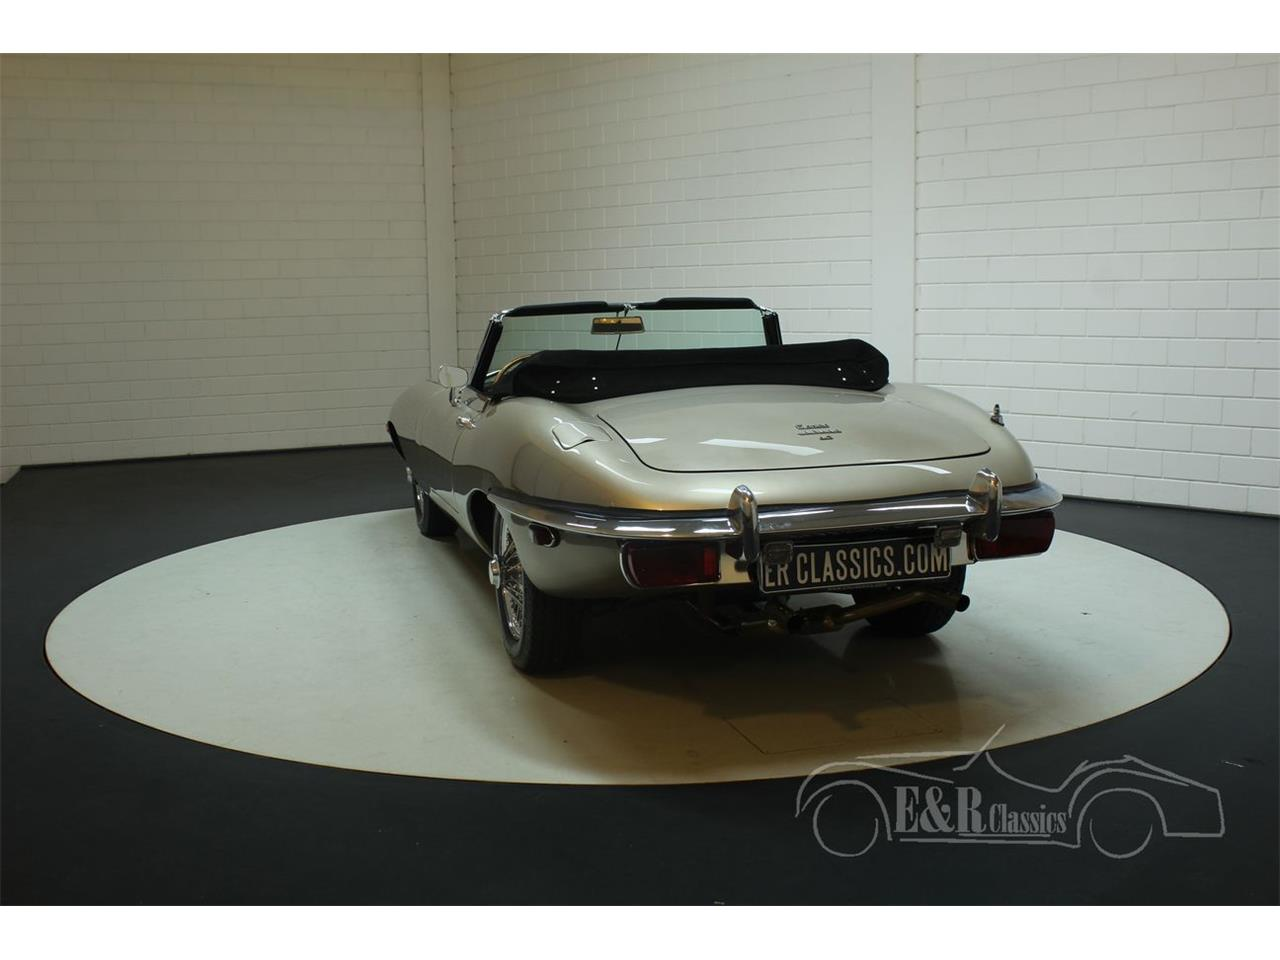 Large Picture of Classic '70 E-Type located in Waalwijk - Keine Angabe - - $112,750.00 - PH40